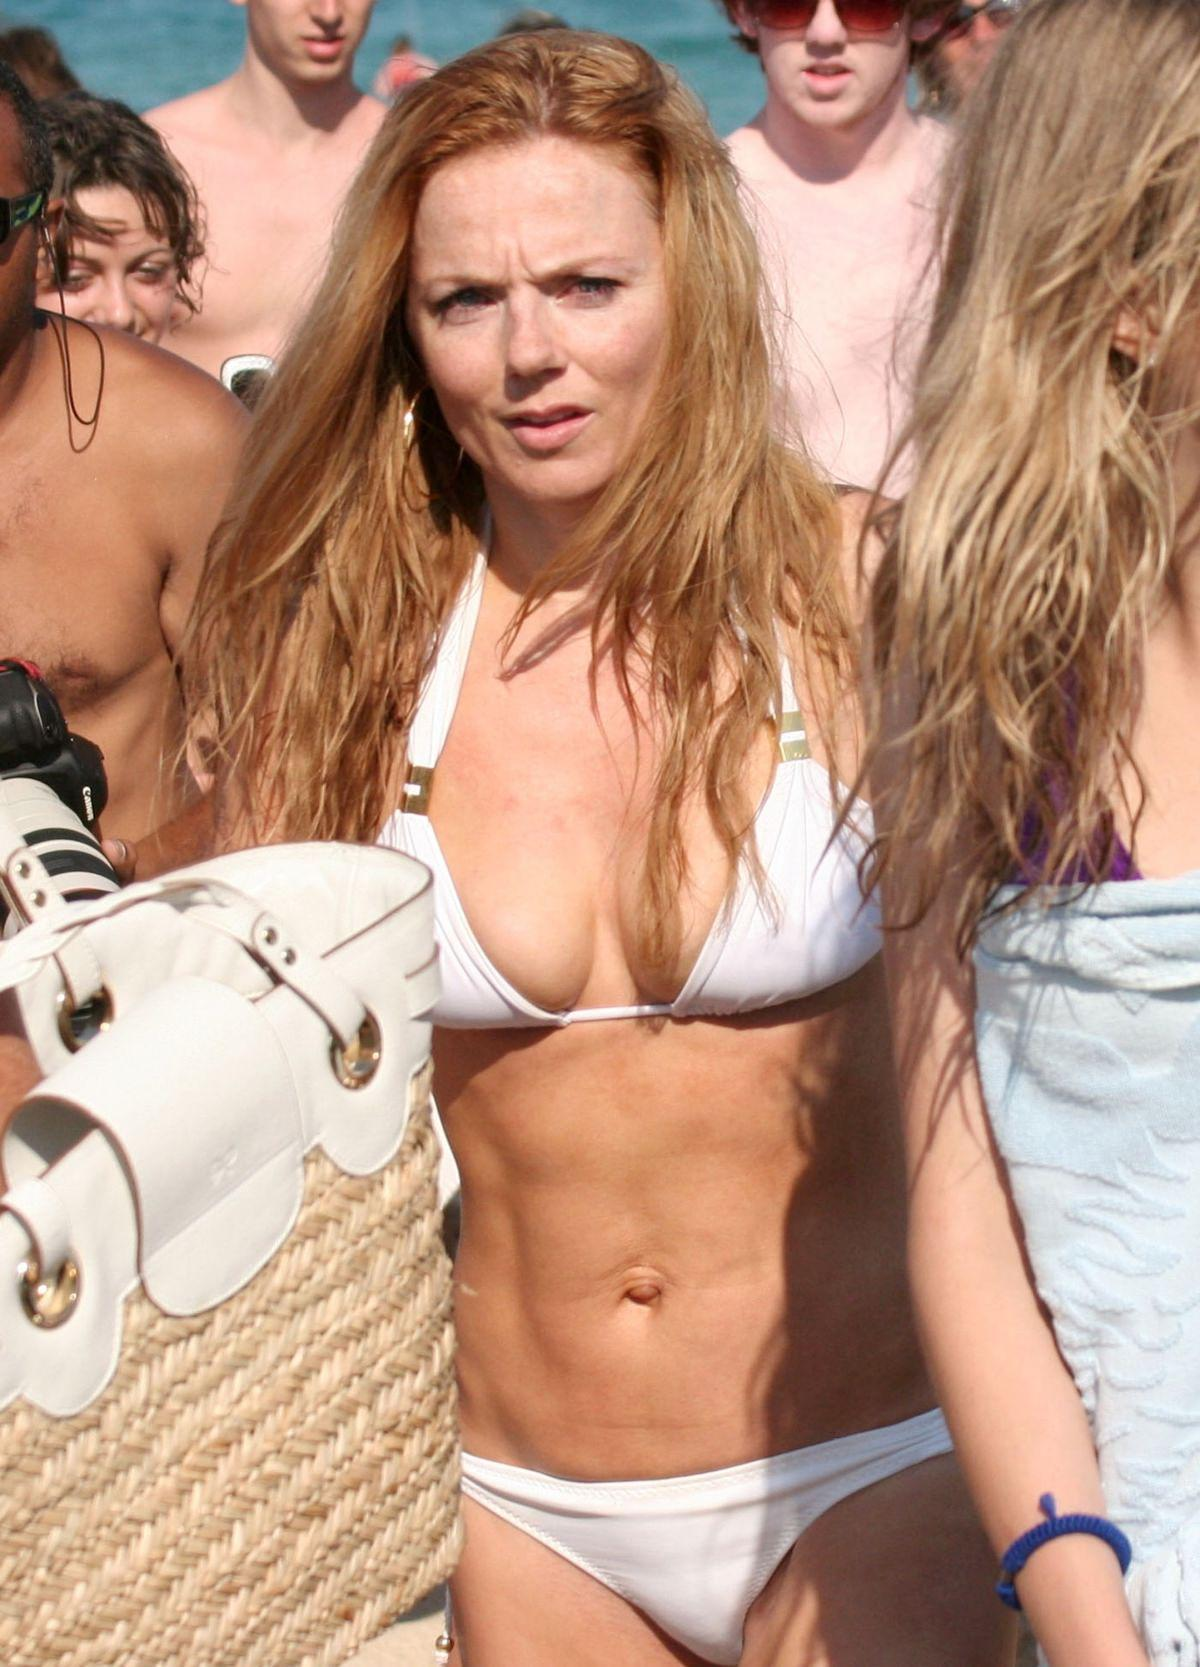 Geri Halliwell Nude Pics geri halliwell nude - page 9 pictures, naked, oops, topless